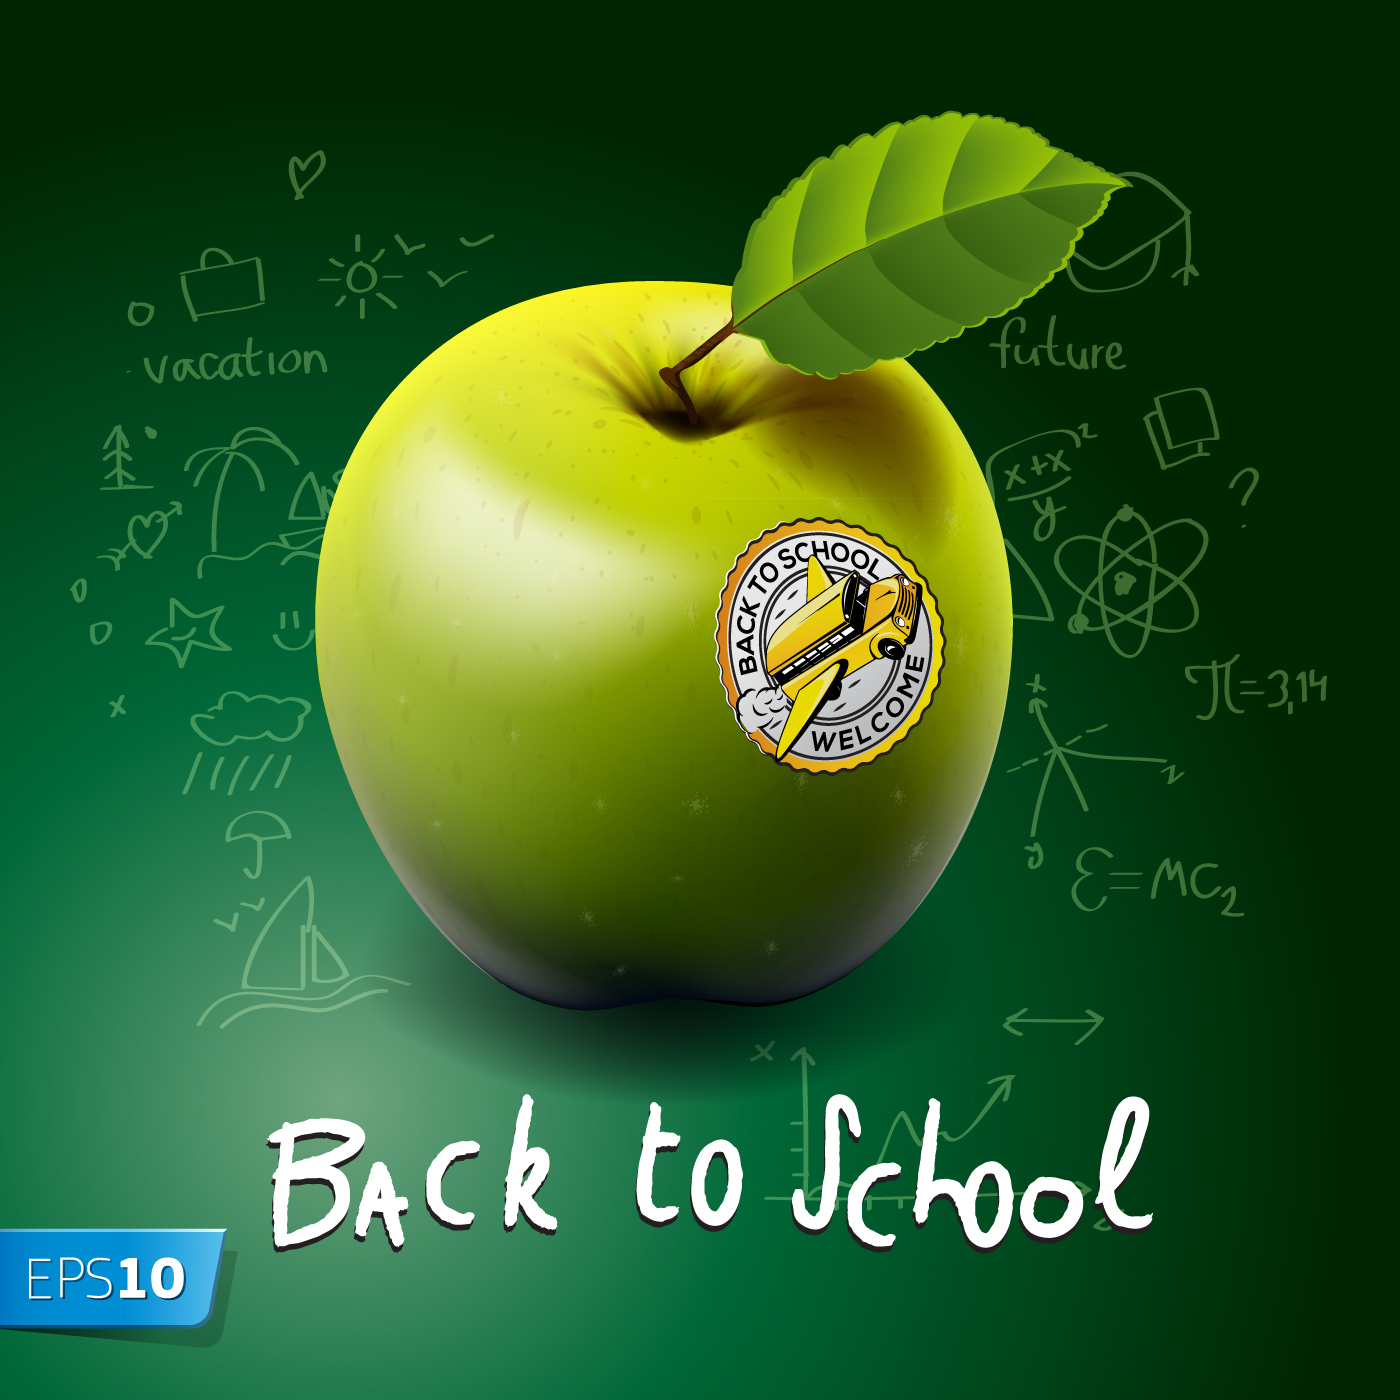 Back to School style backgrounds 03   Vector Background download 1400x1400